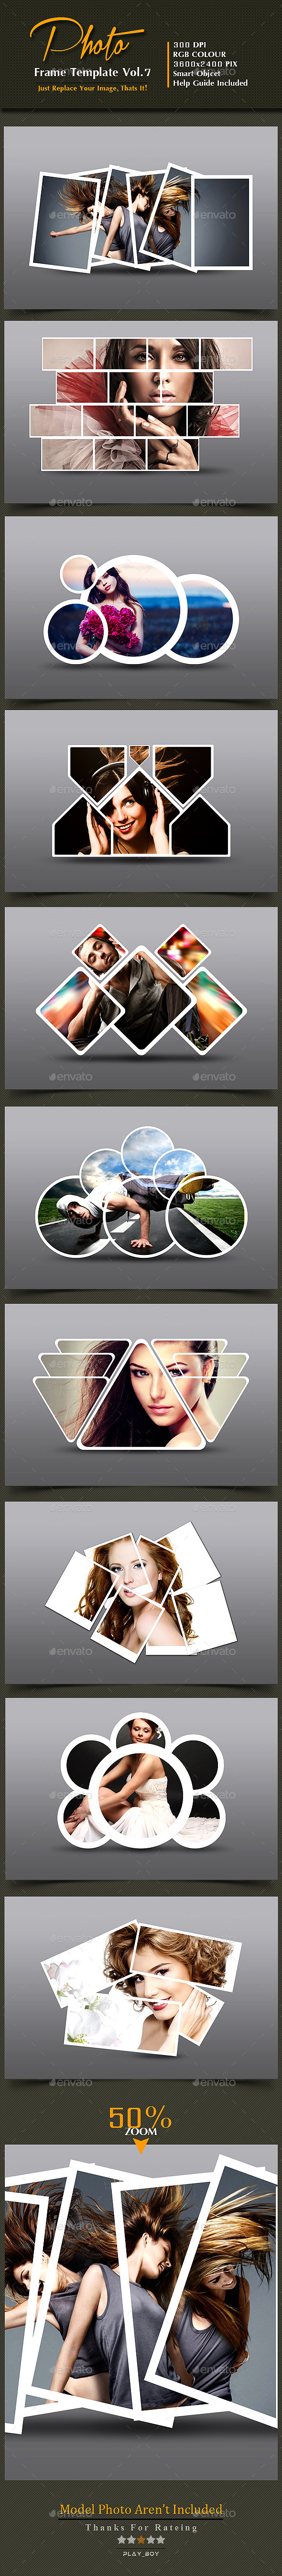 Photo Frame Templates Vol. 7 - Photo Templates Graphics